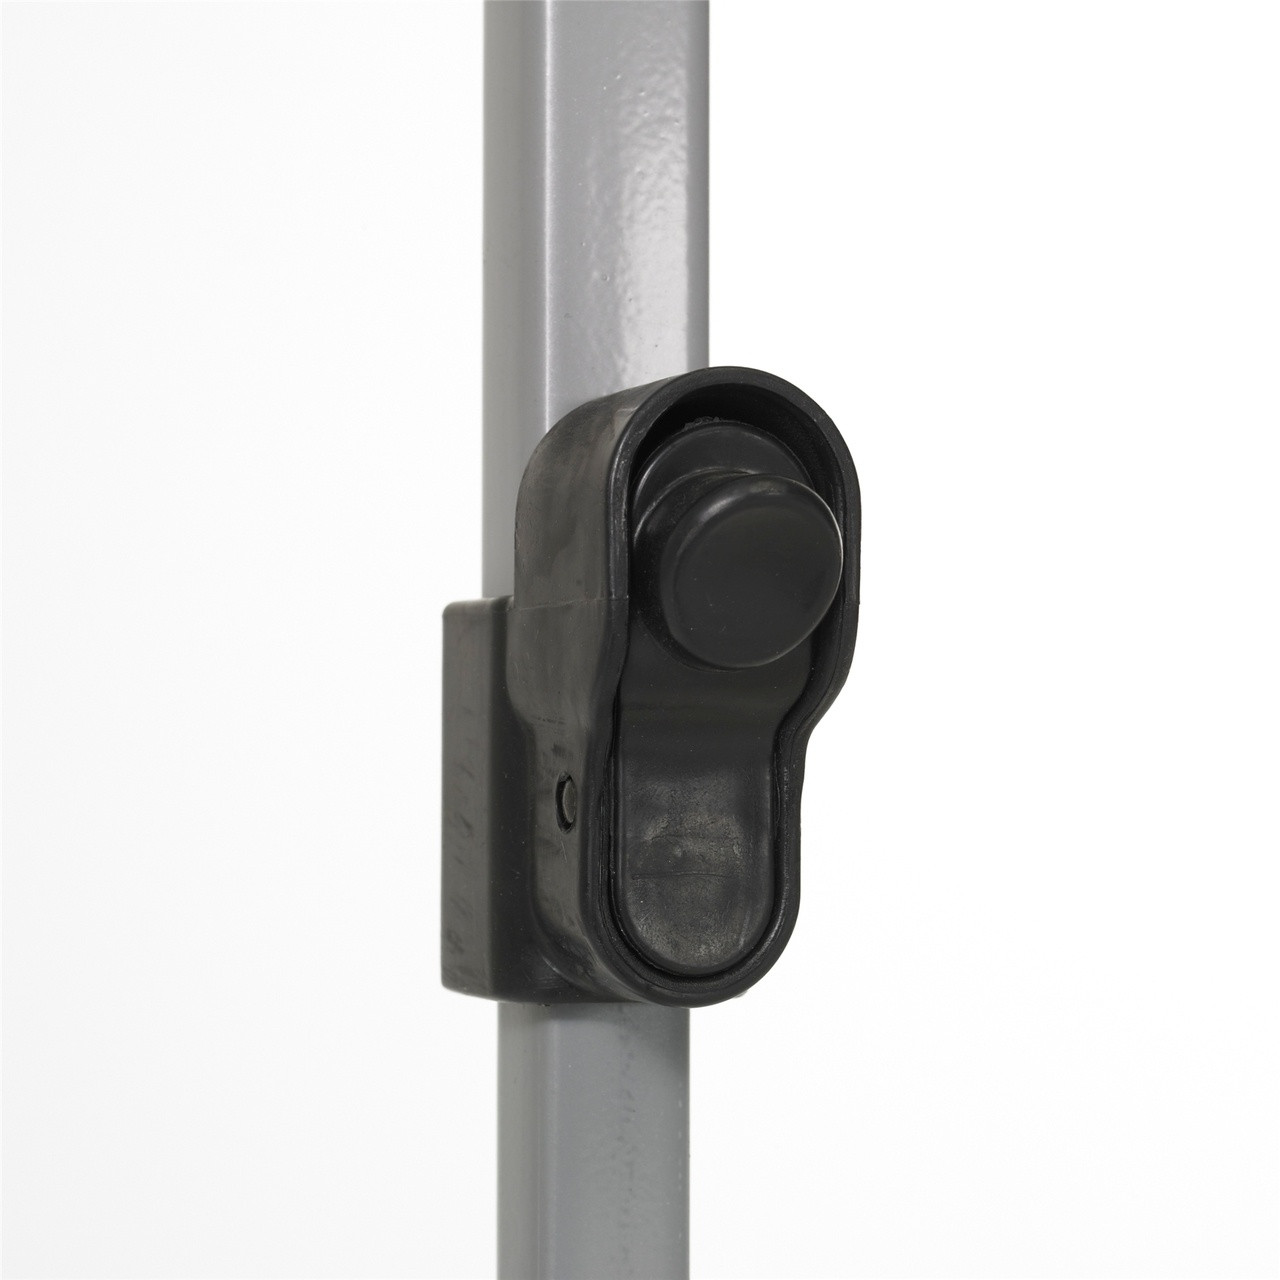 Close up view of the adjustable height latch on the Wenzel Smartshade Screen House